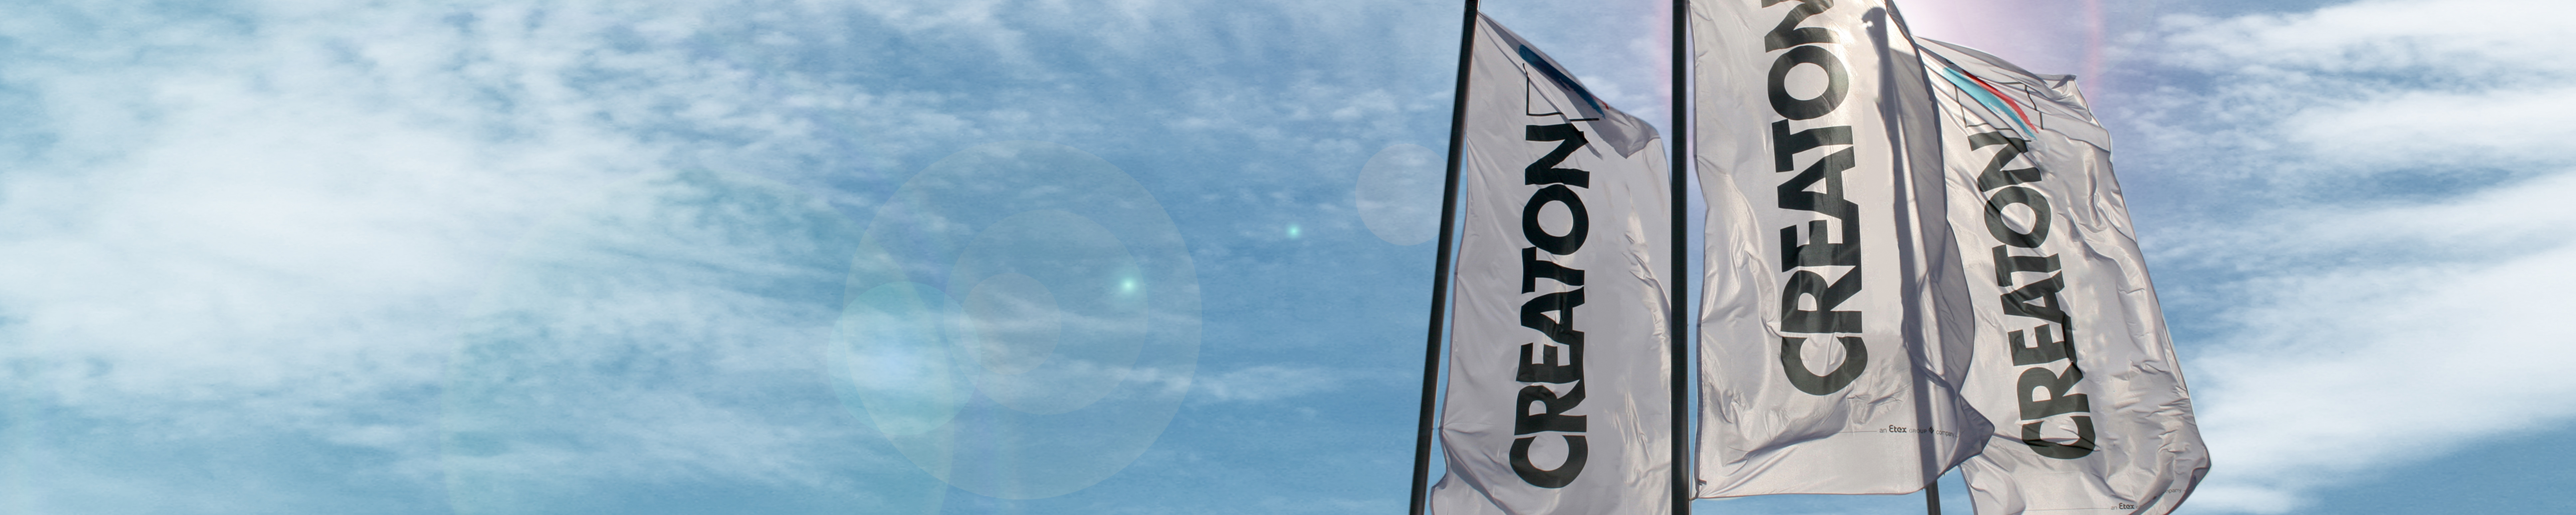 CREATON Flags with blue sky